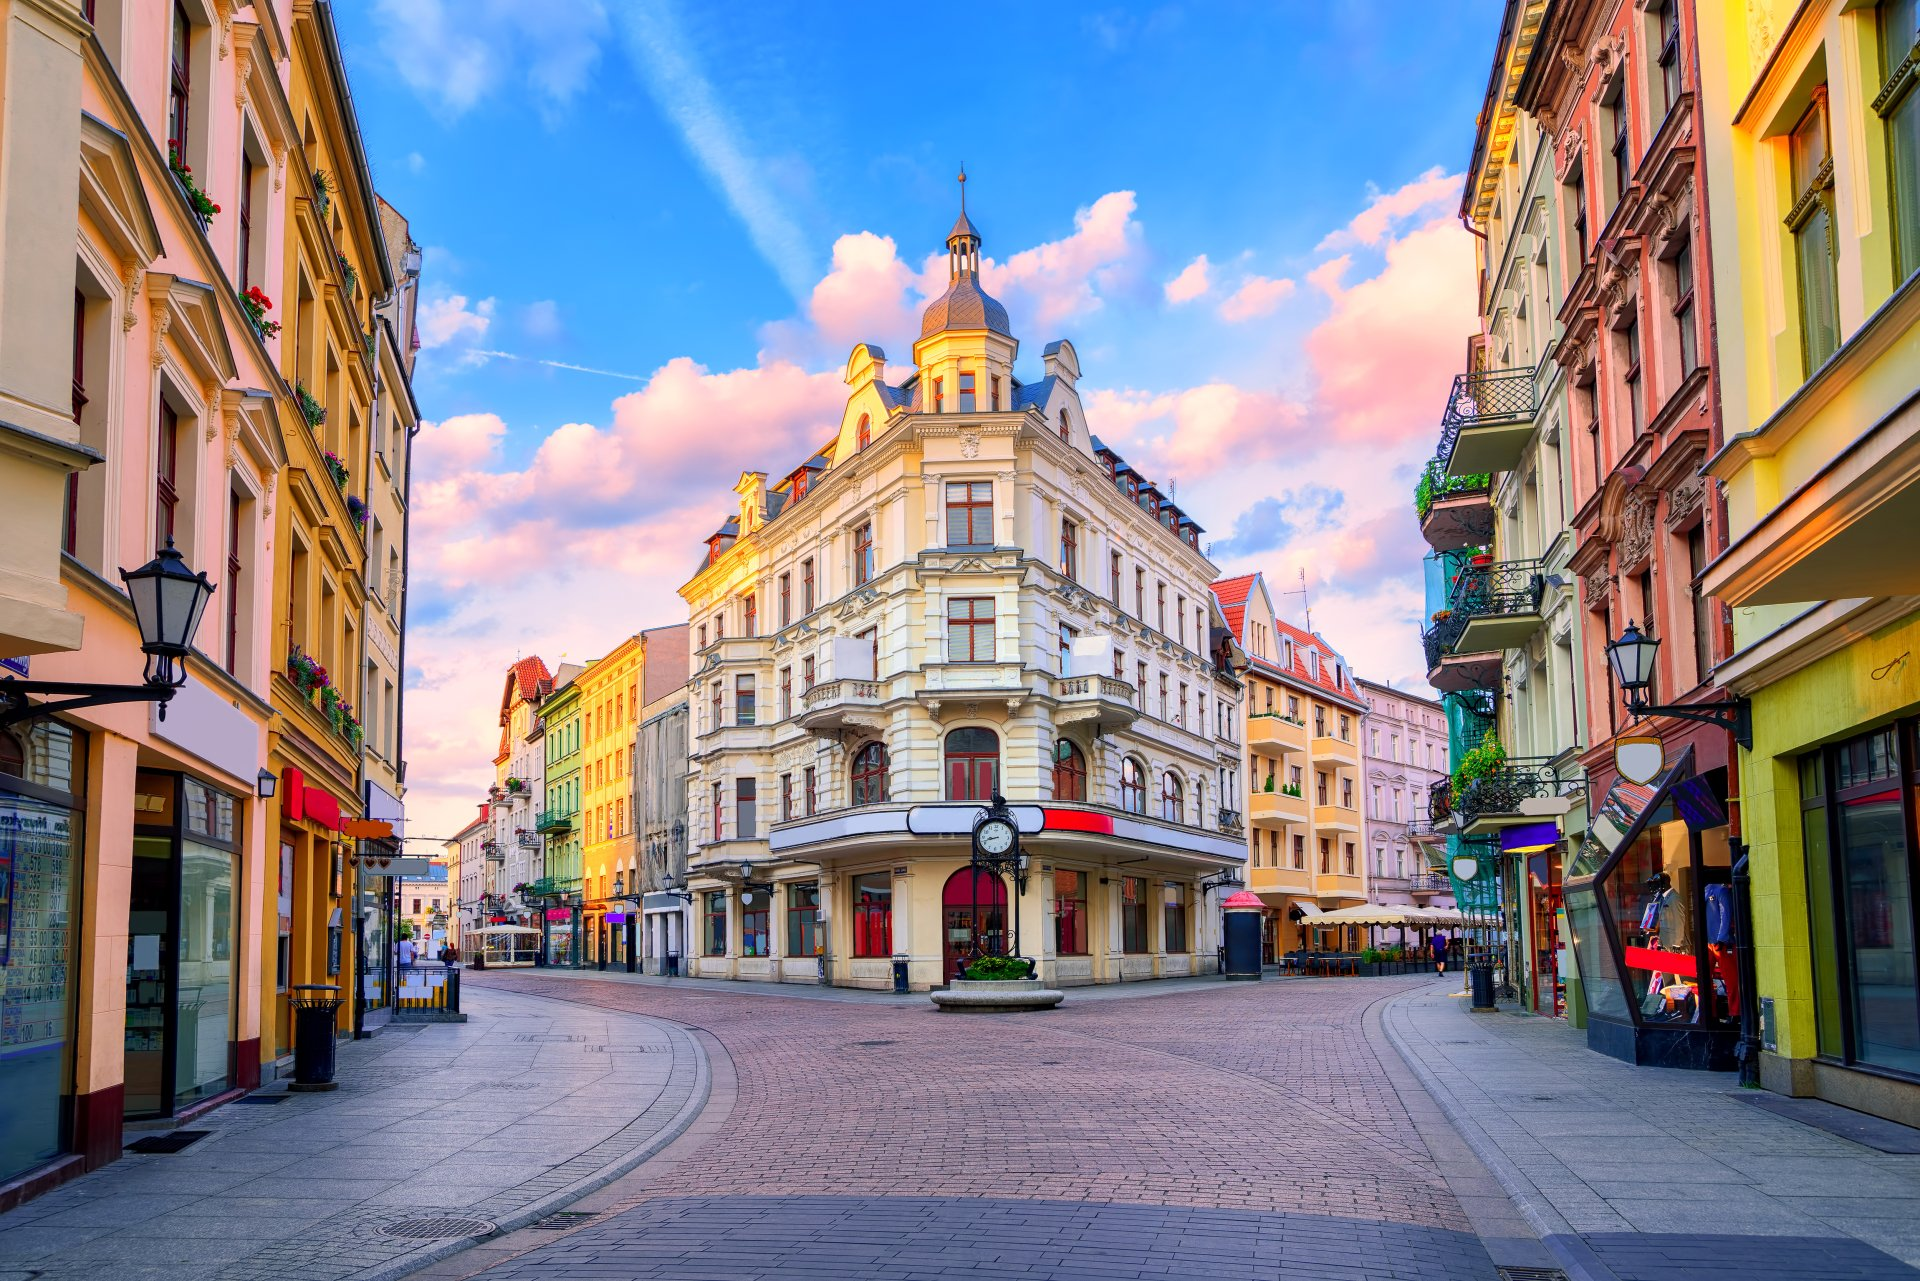 Man Made - City  Poland Architecture Square Building Wallpaper